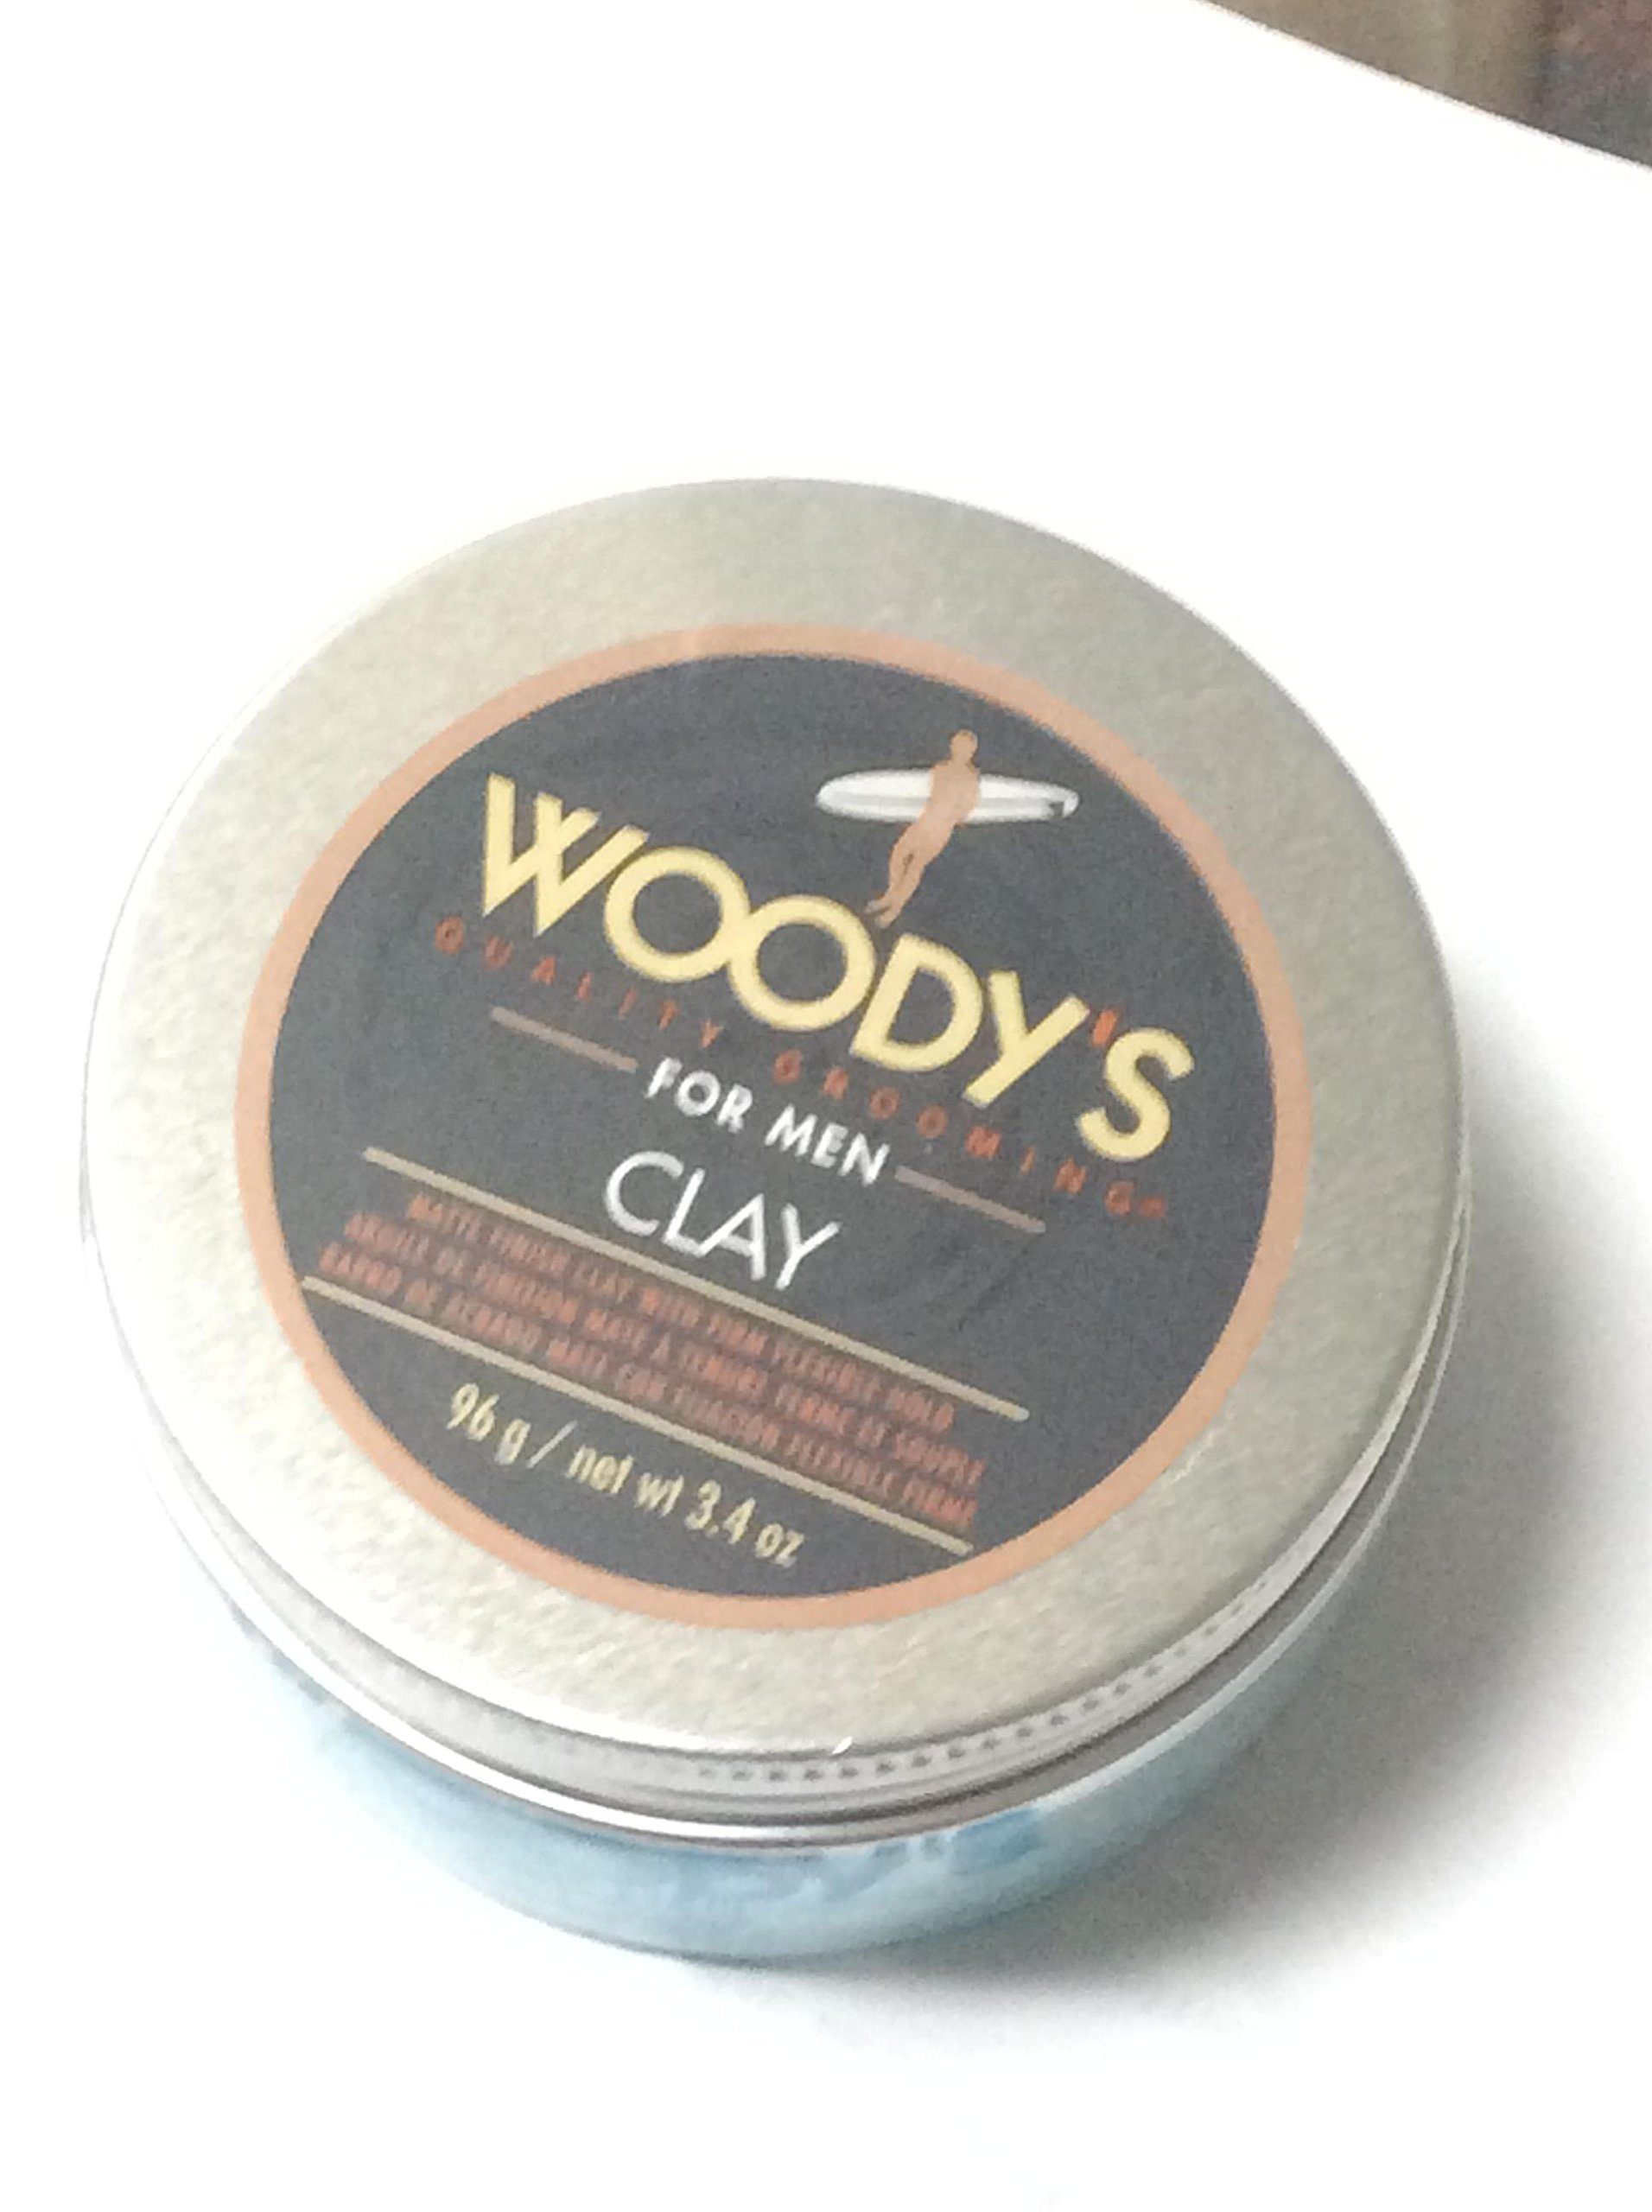 Woody's Clay Pomade, 3.4 Ounce